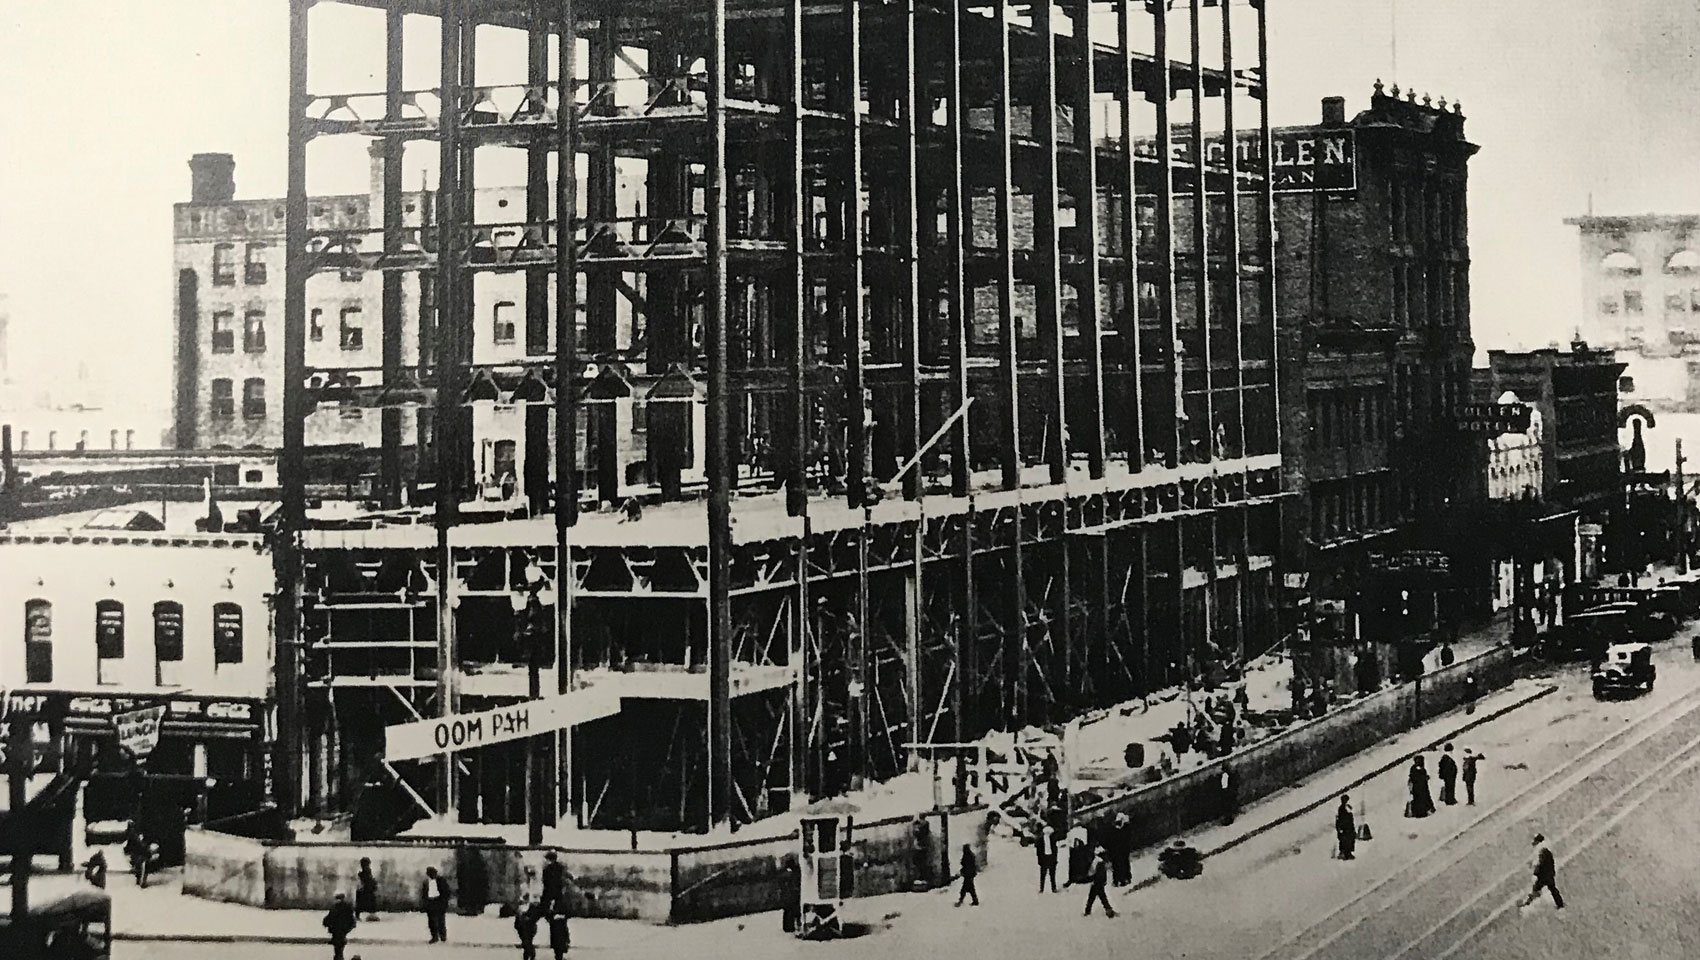 Construction of Continental Bank